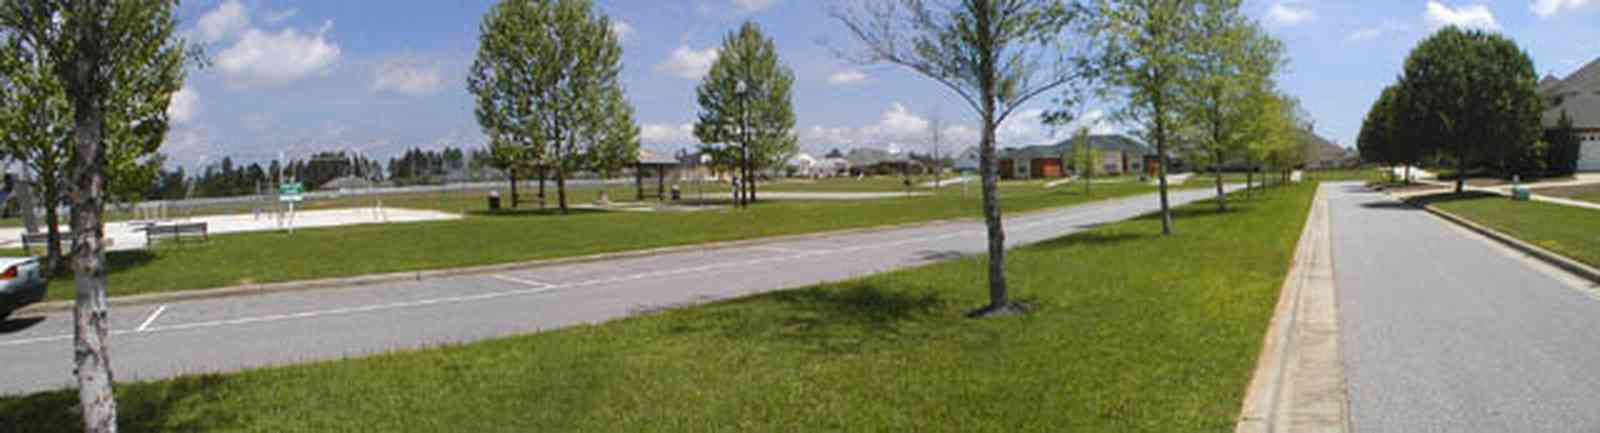 Cantonment:-Milestone_16.jpg:  cumulus clouds, oak trees, boulevard, tract houses, garden